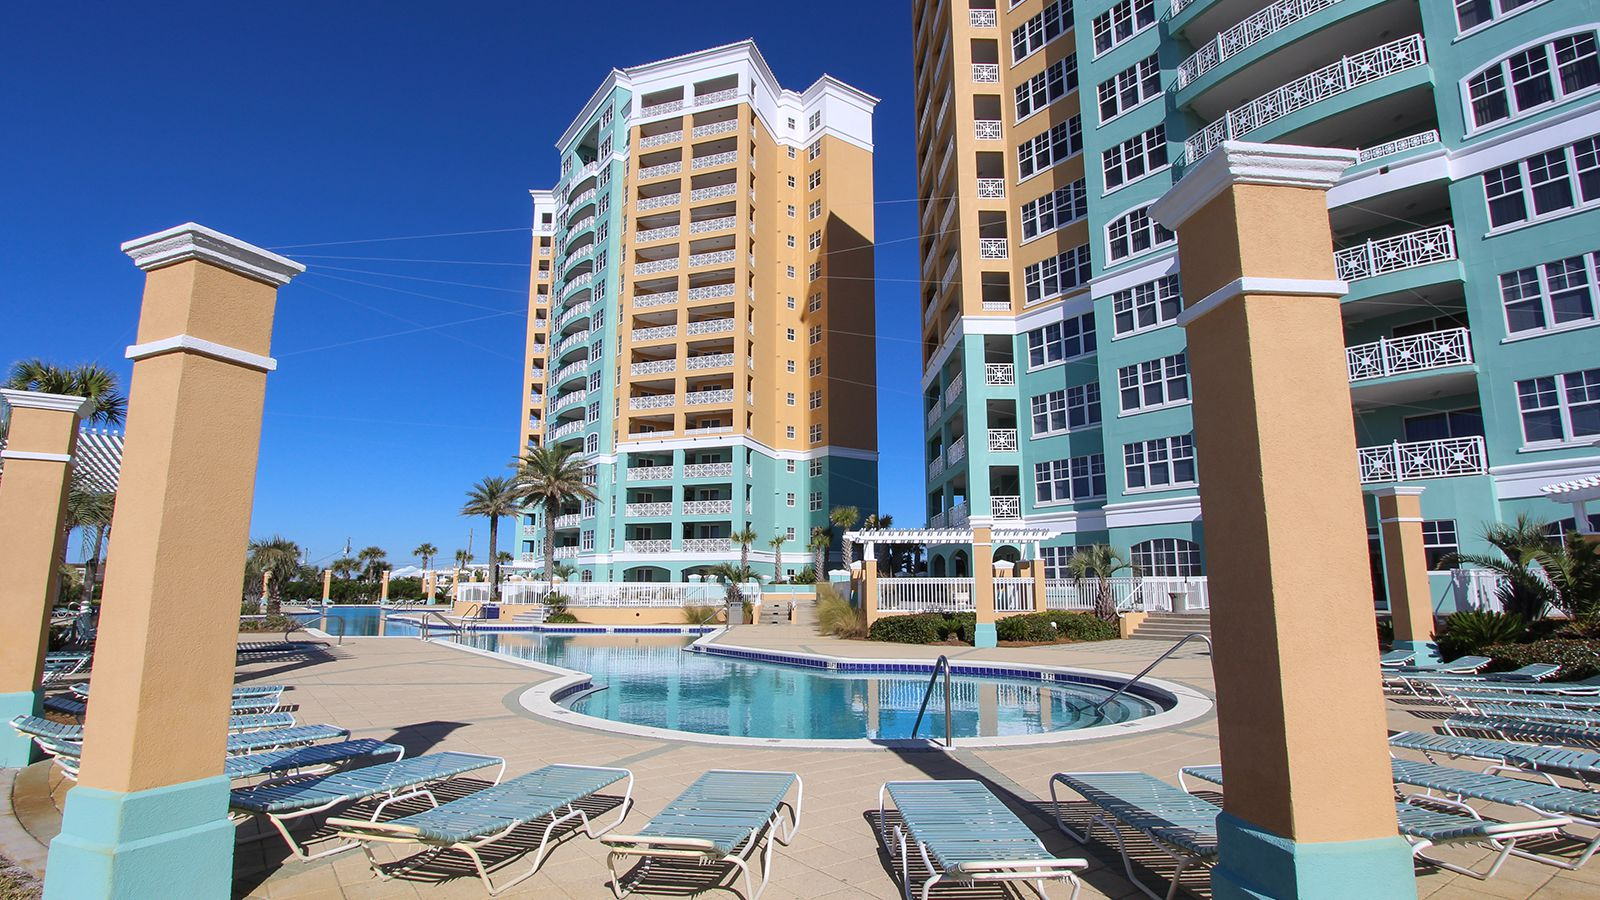 A Fun Stay 6 Hotels With Lazy River In Panama City Beach Florida